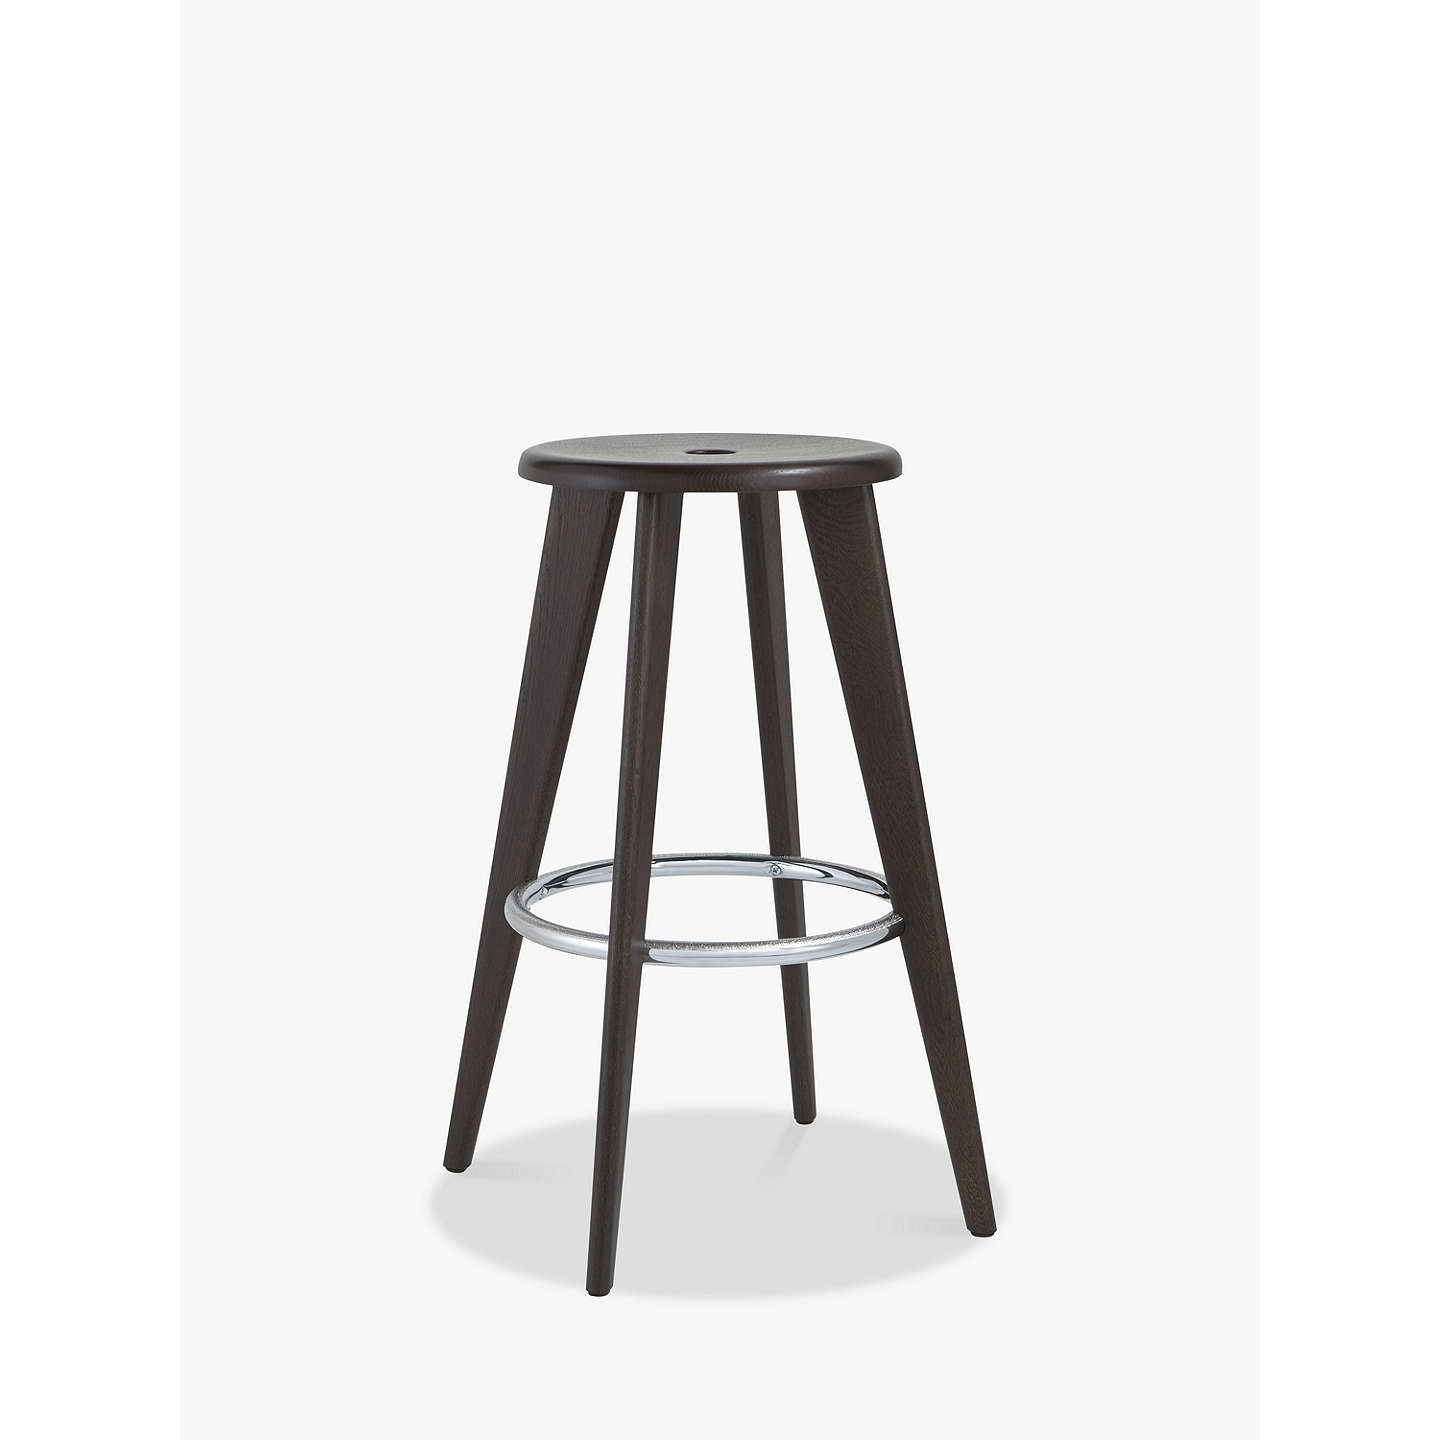 vitra tabouret haut bar stool dark oak at john lewis. Black Bedroom Furniture Sets. Home Design Ideas